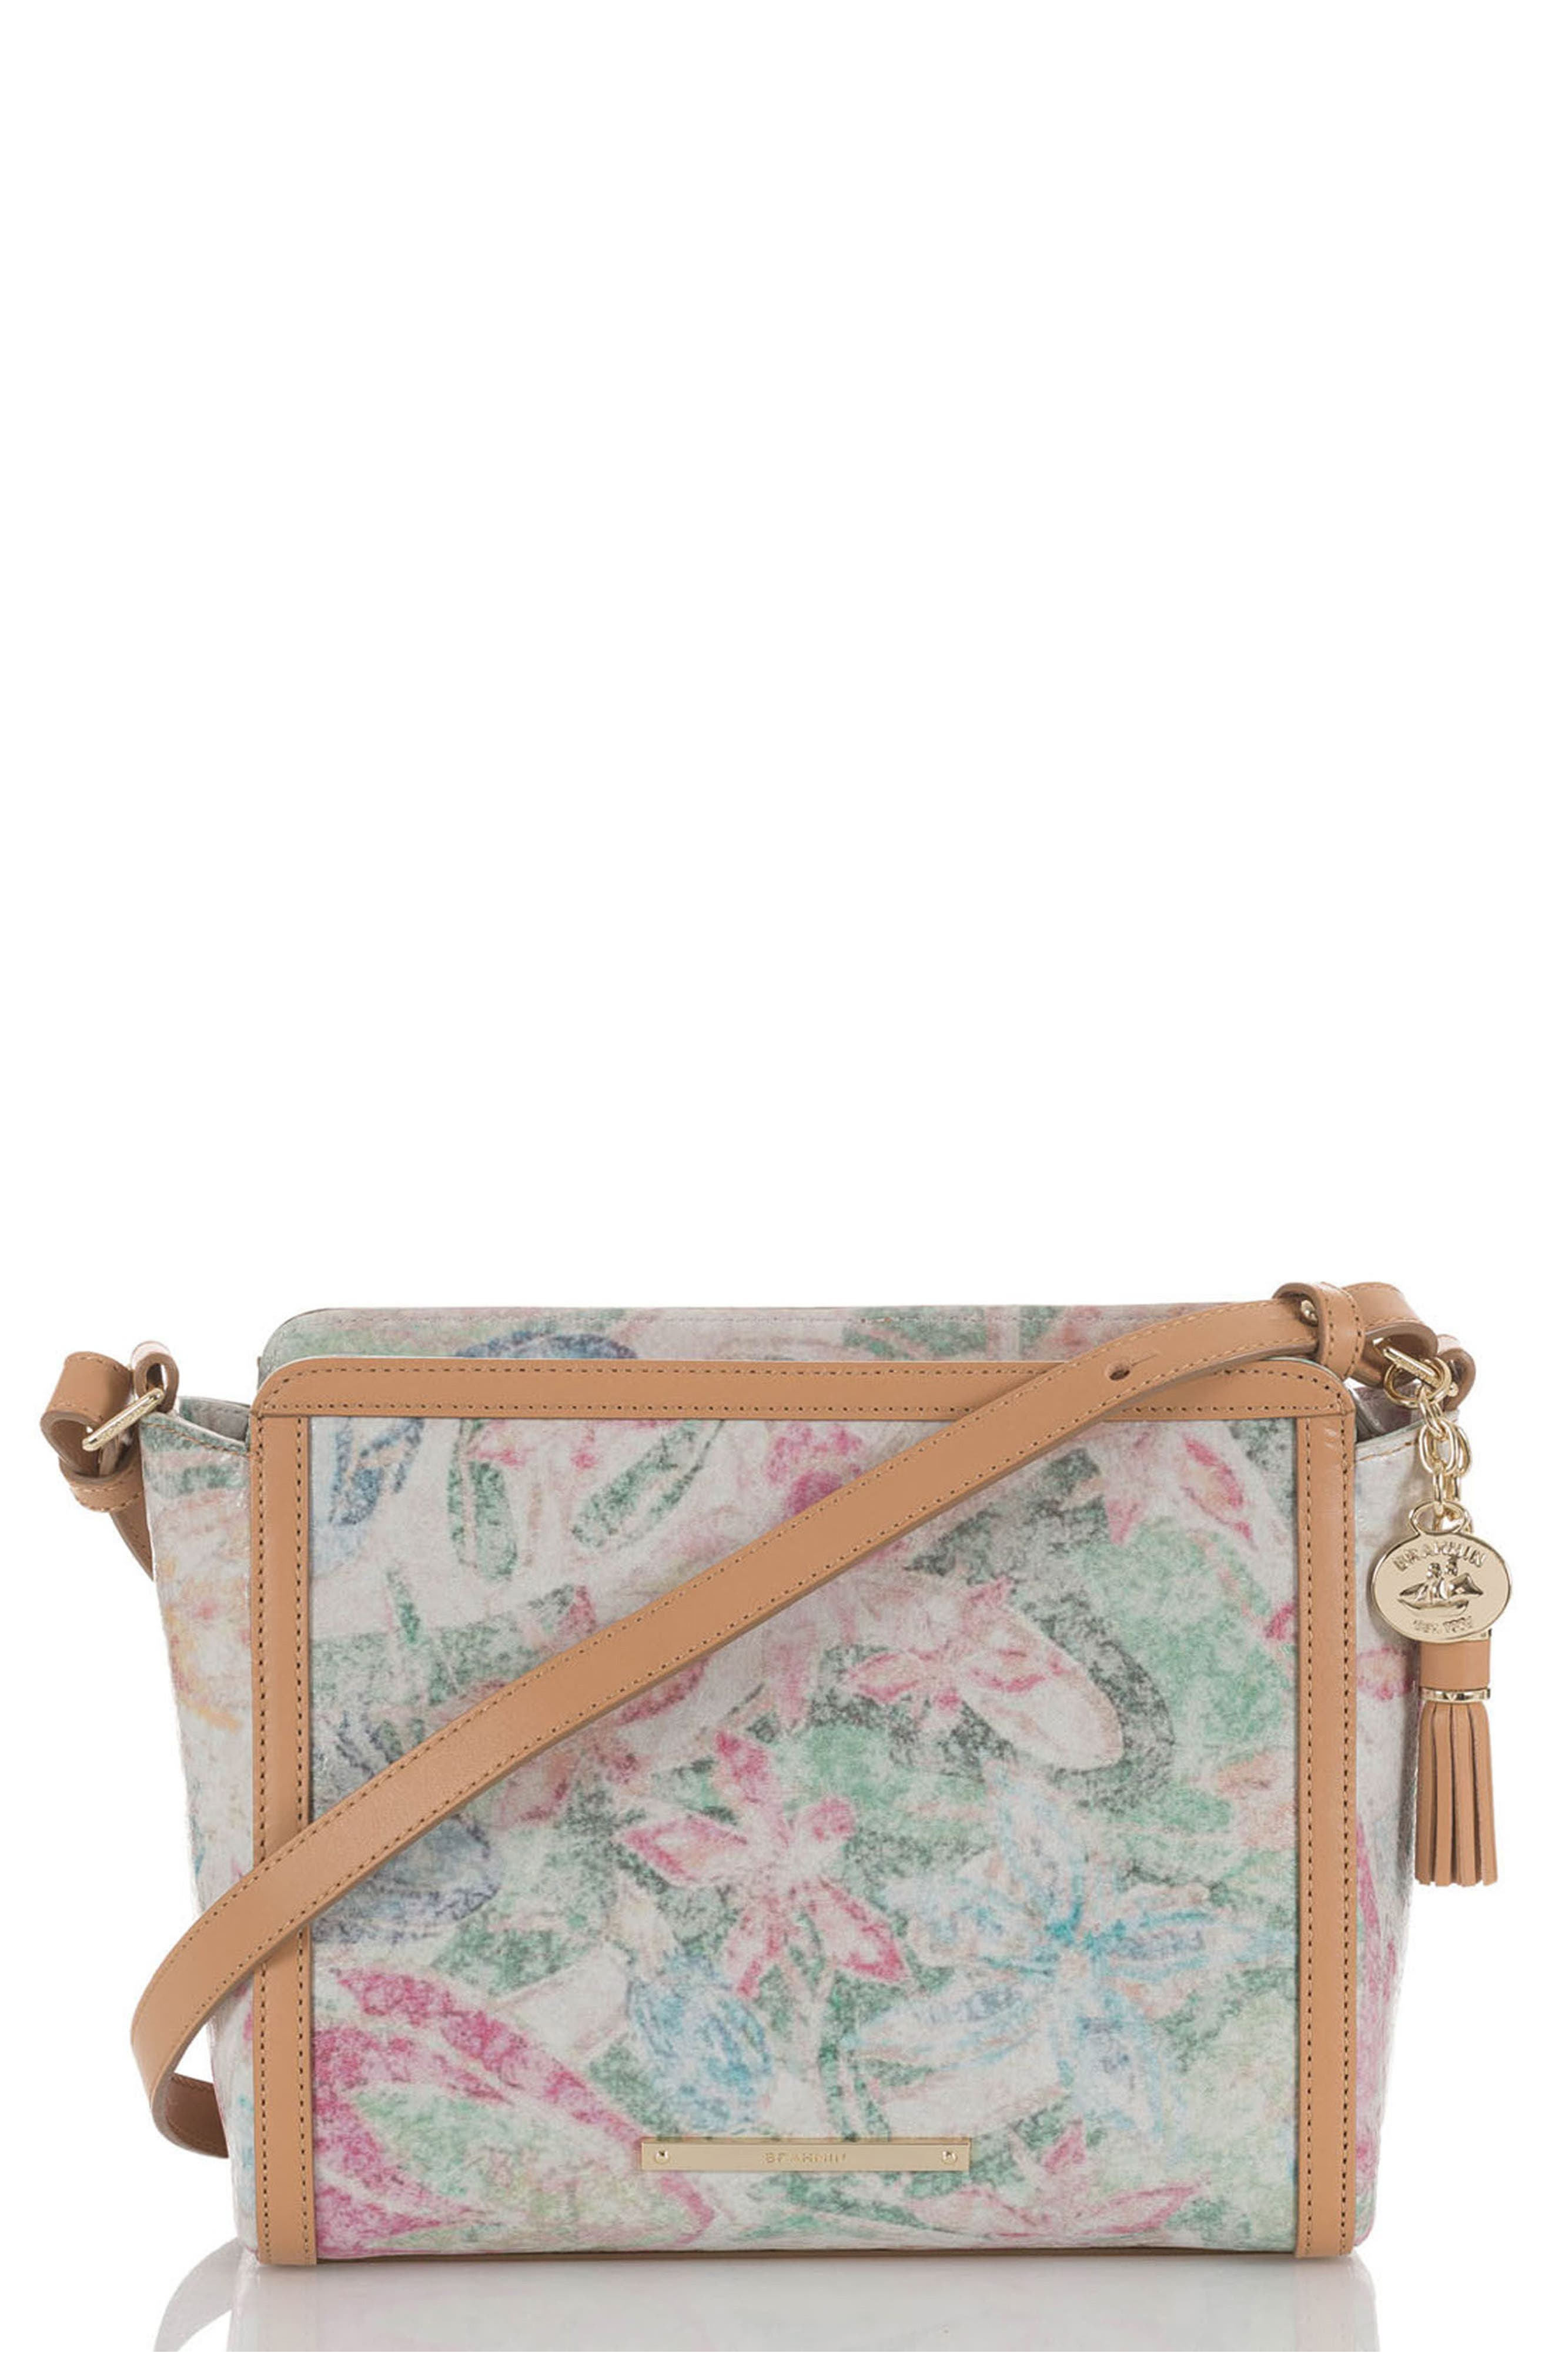 Floral Carrie Leather Crossbody Bag,                         Main,                         color, 250